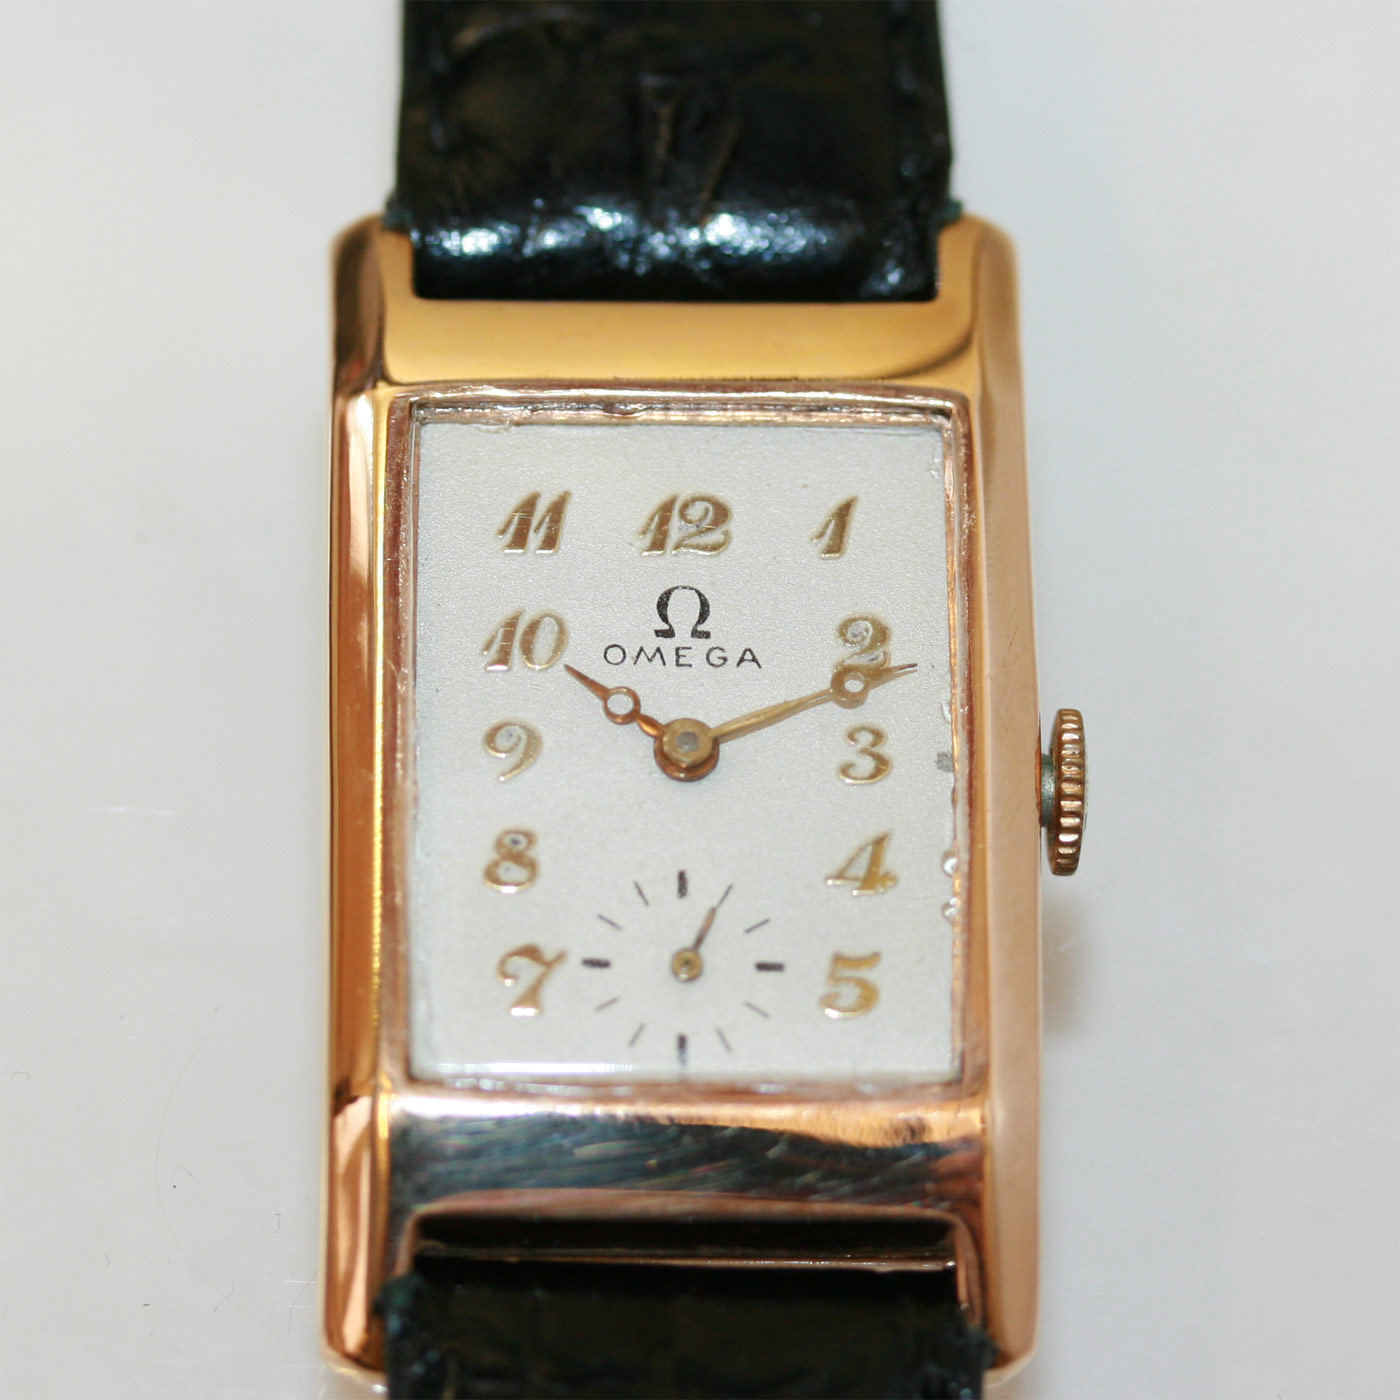 Buy vintage rectangle omega watch sold items sold omega watches sydney kalmarantiques for Omega watch vintage